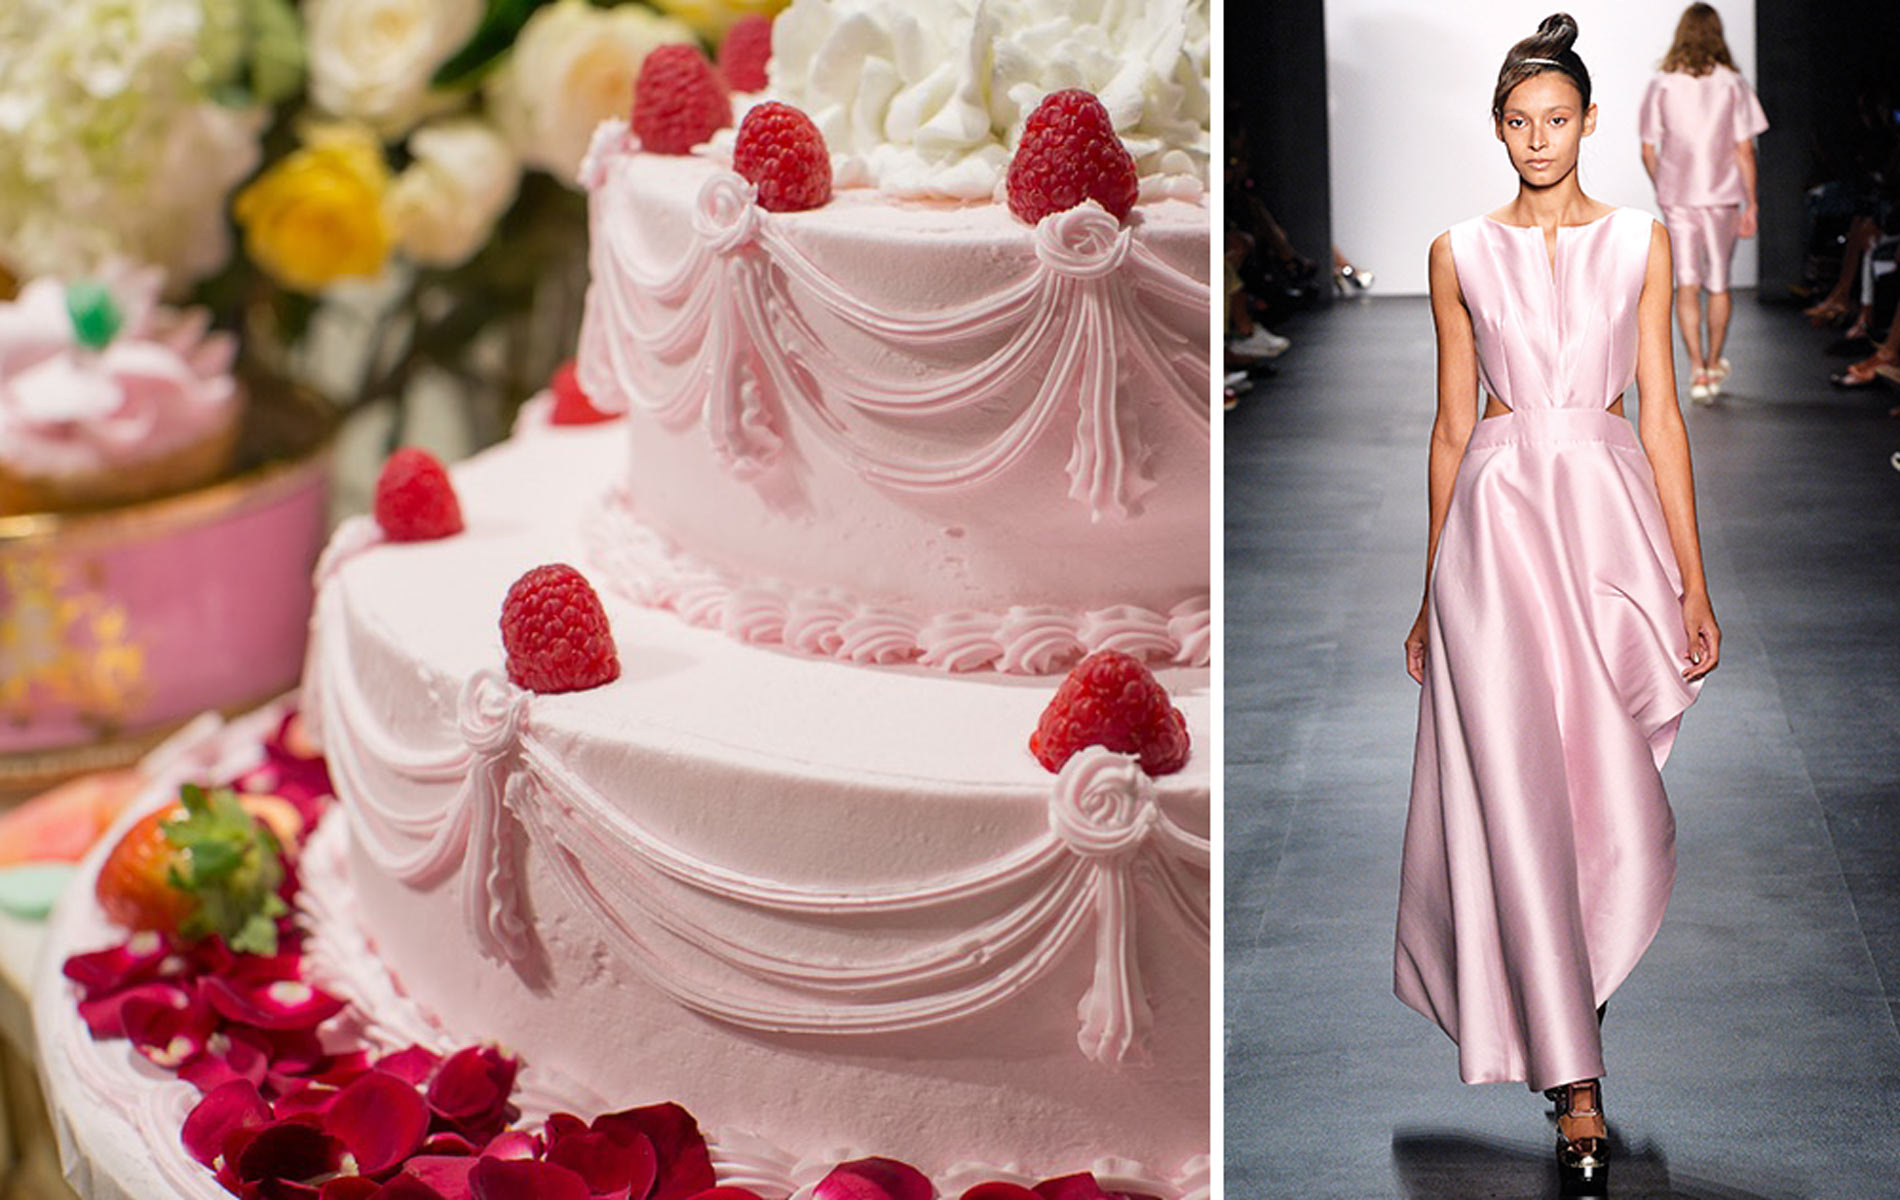 new york fashion week spring/summer 2016 pink dress and cake